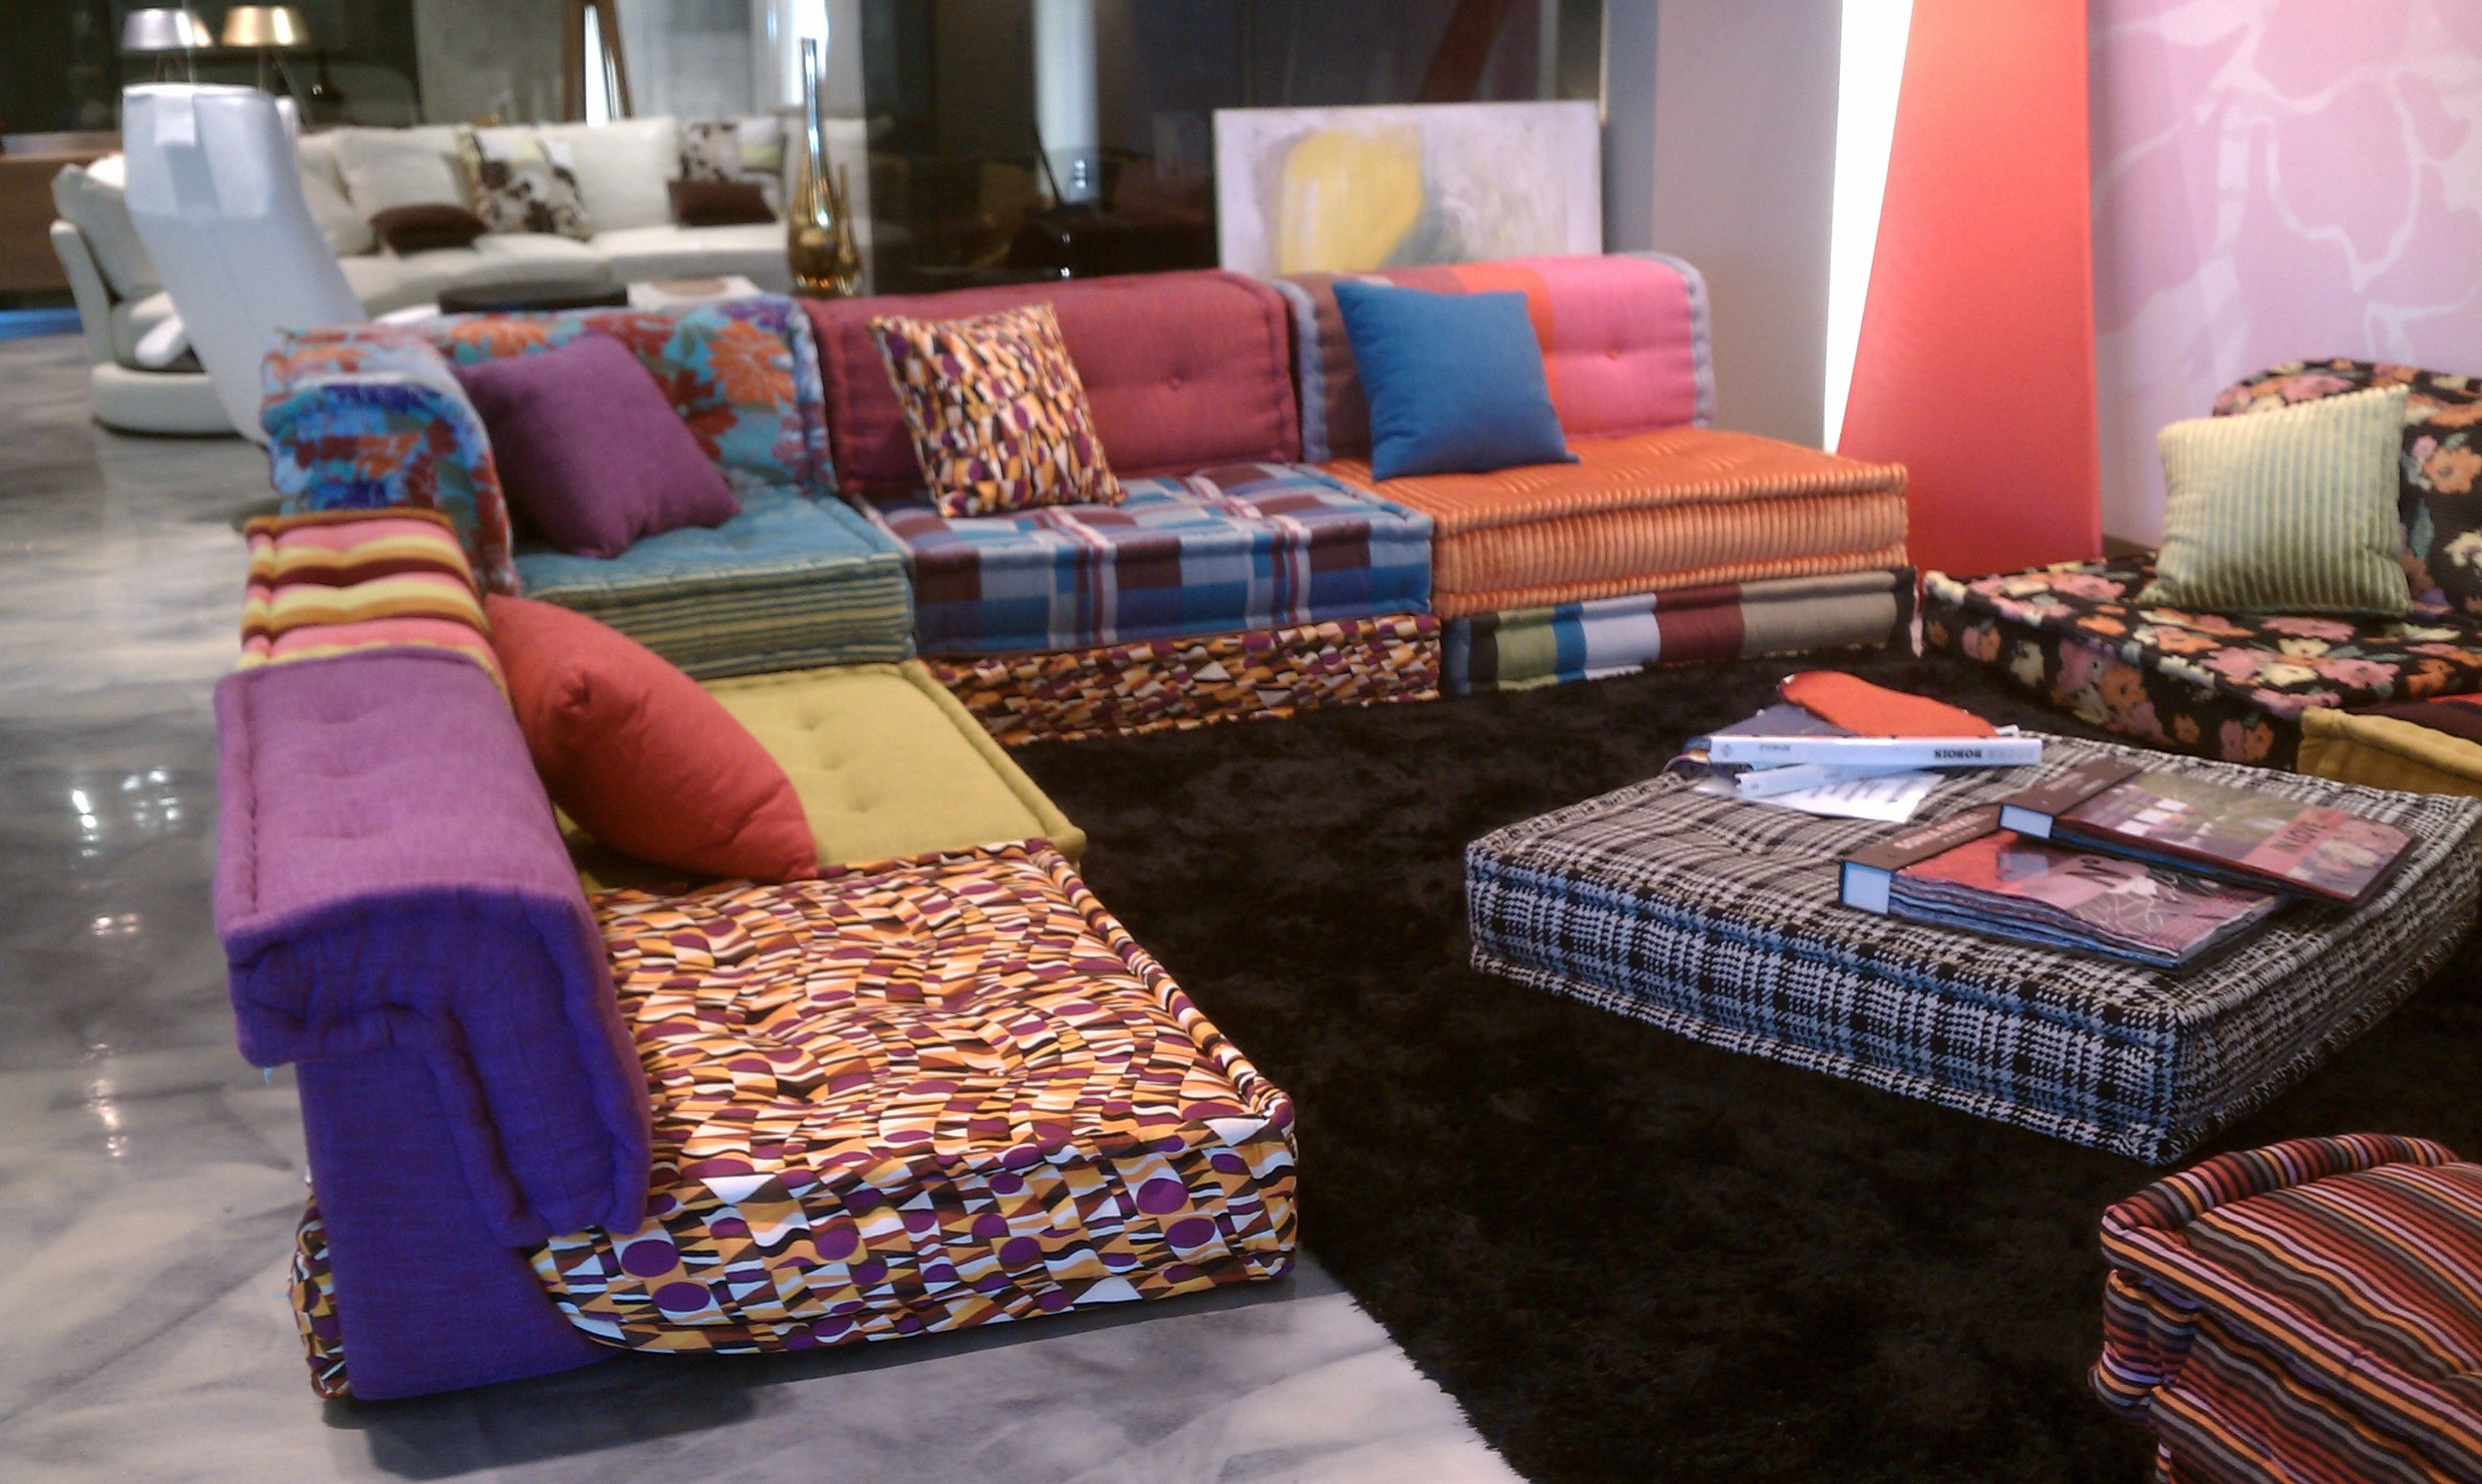 Accessories Furniture Exotic Dream Couch Missoni Bohemian Sofa The Cherie As Well Mah Jong And Imag0203 Imag0205 Imag0206 Entrancing